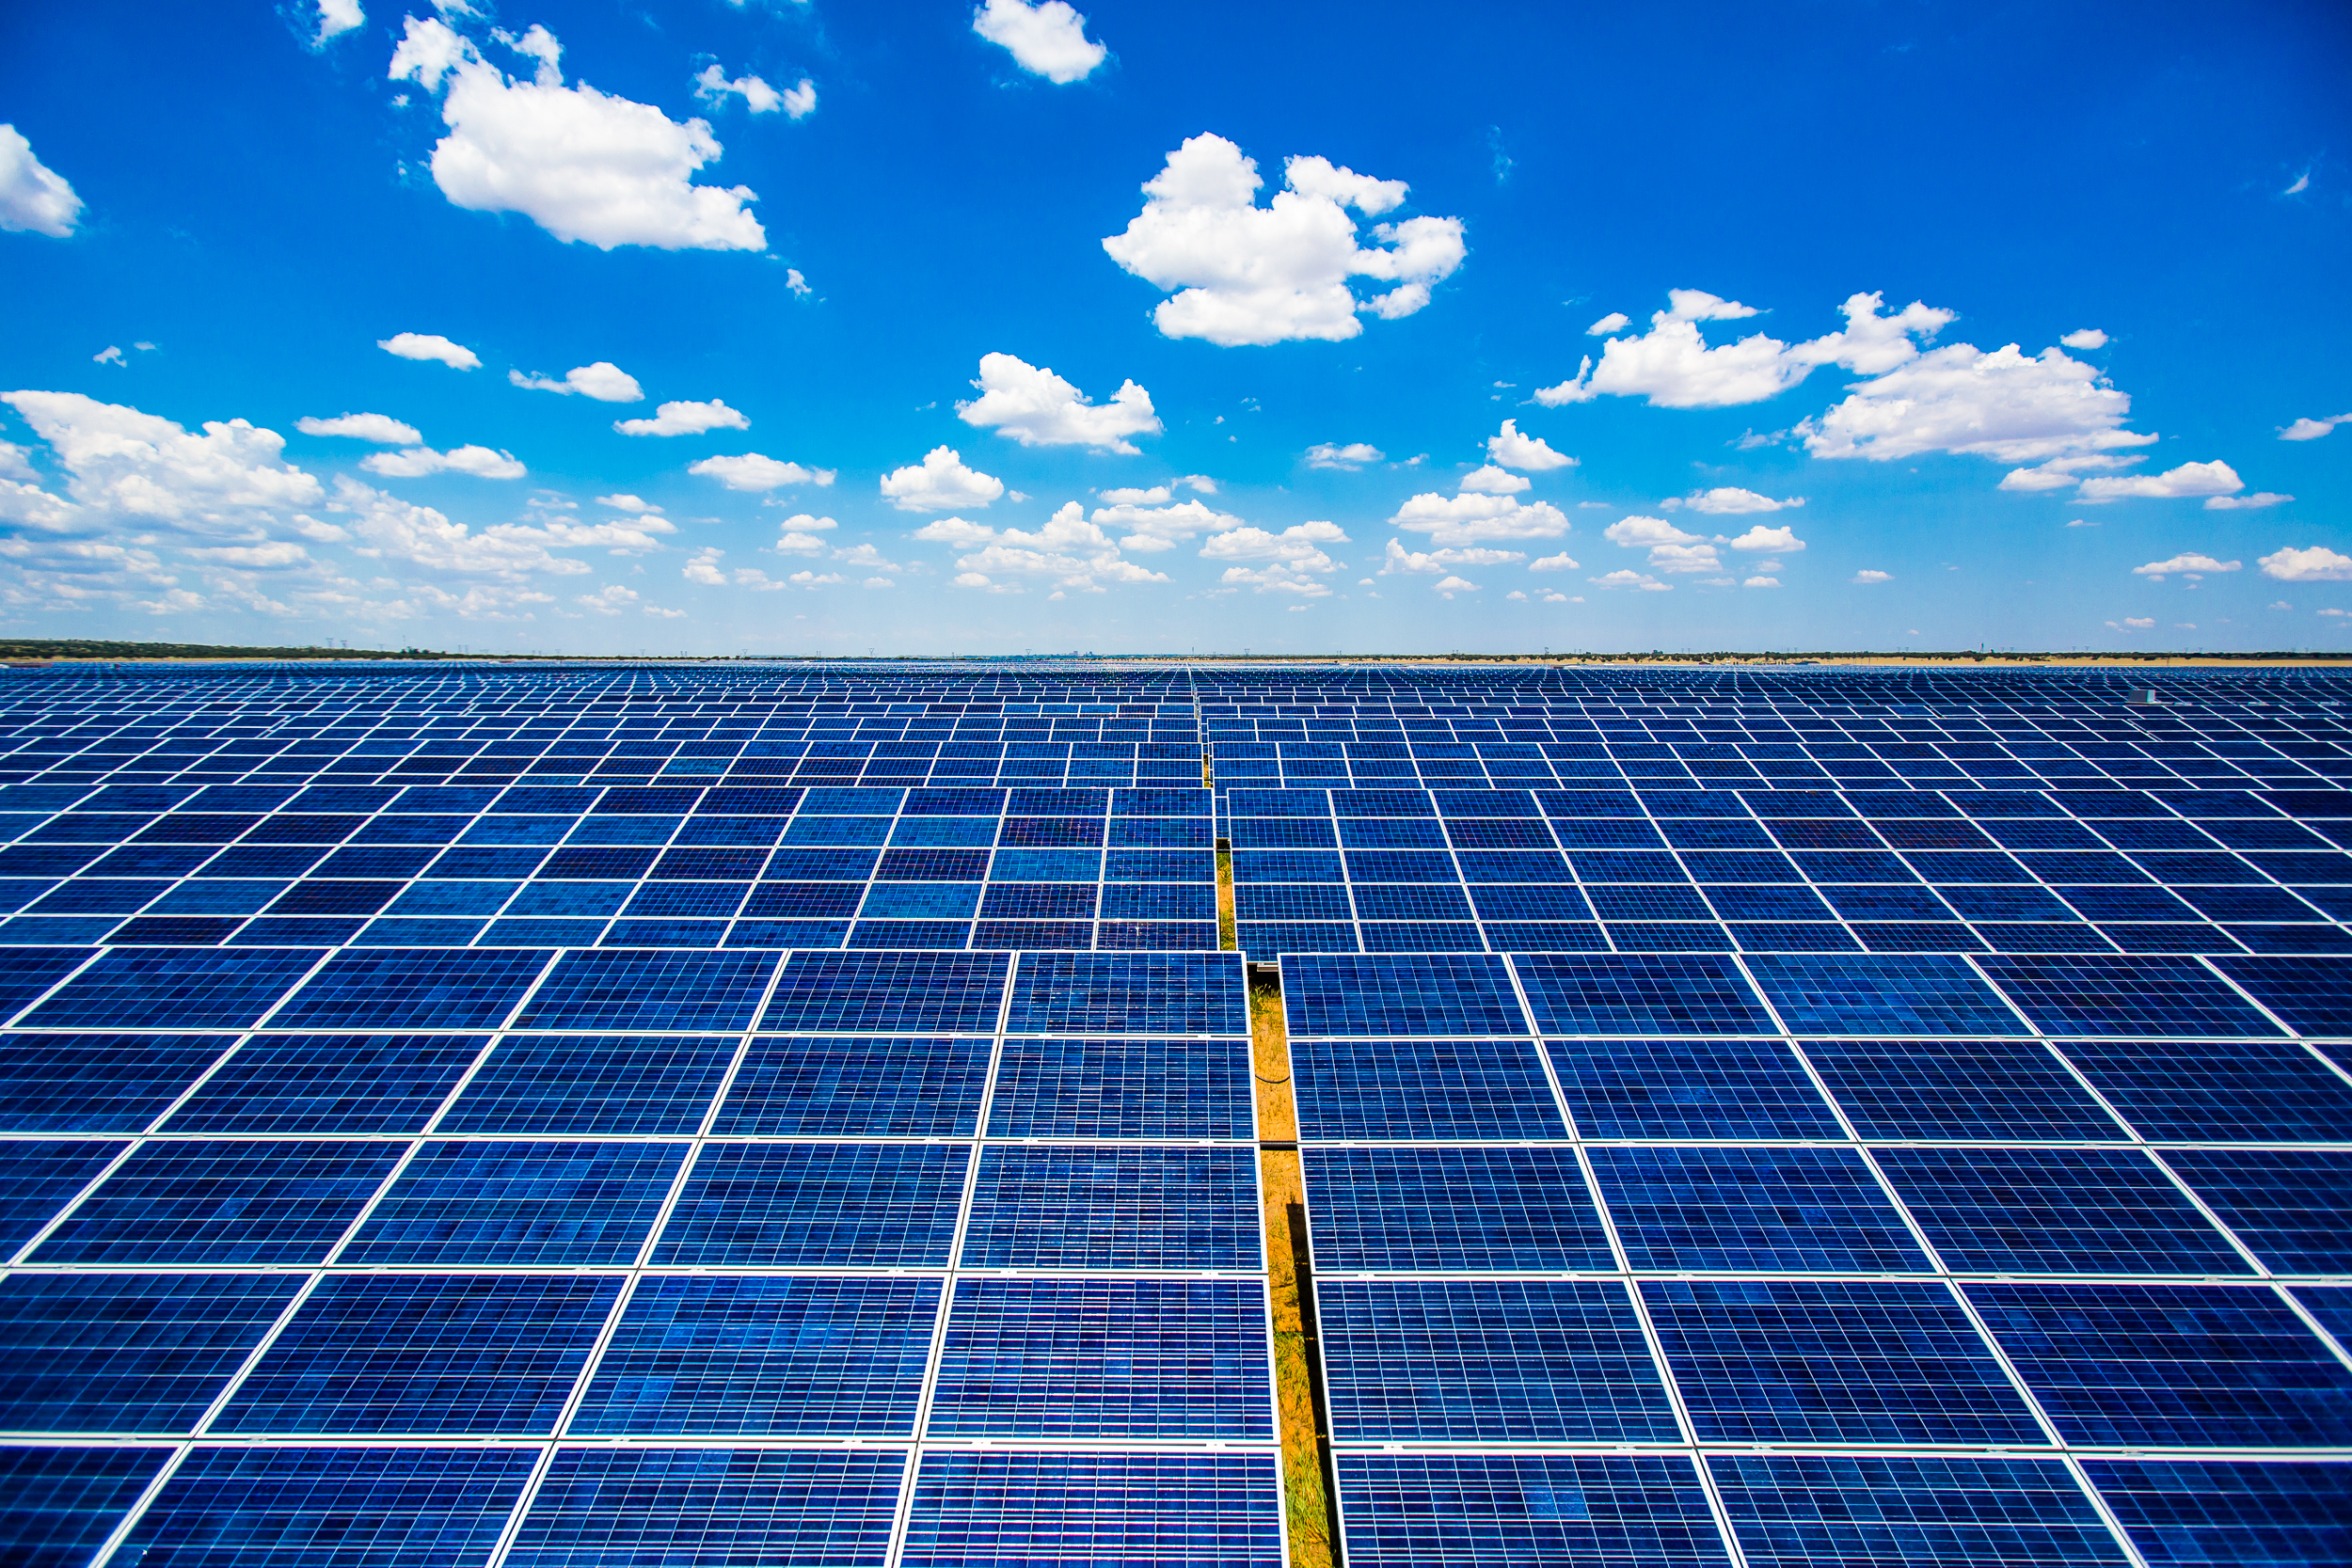 Droogfontein solar PV